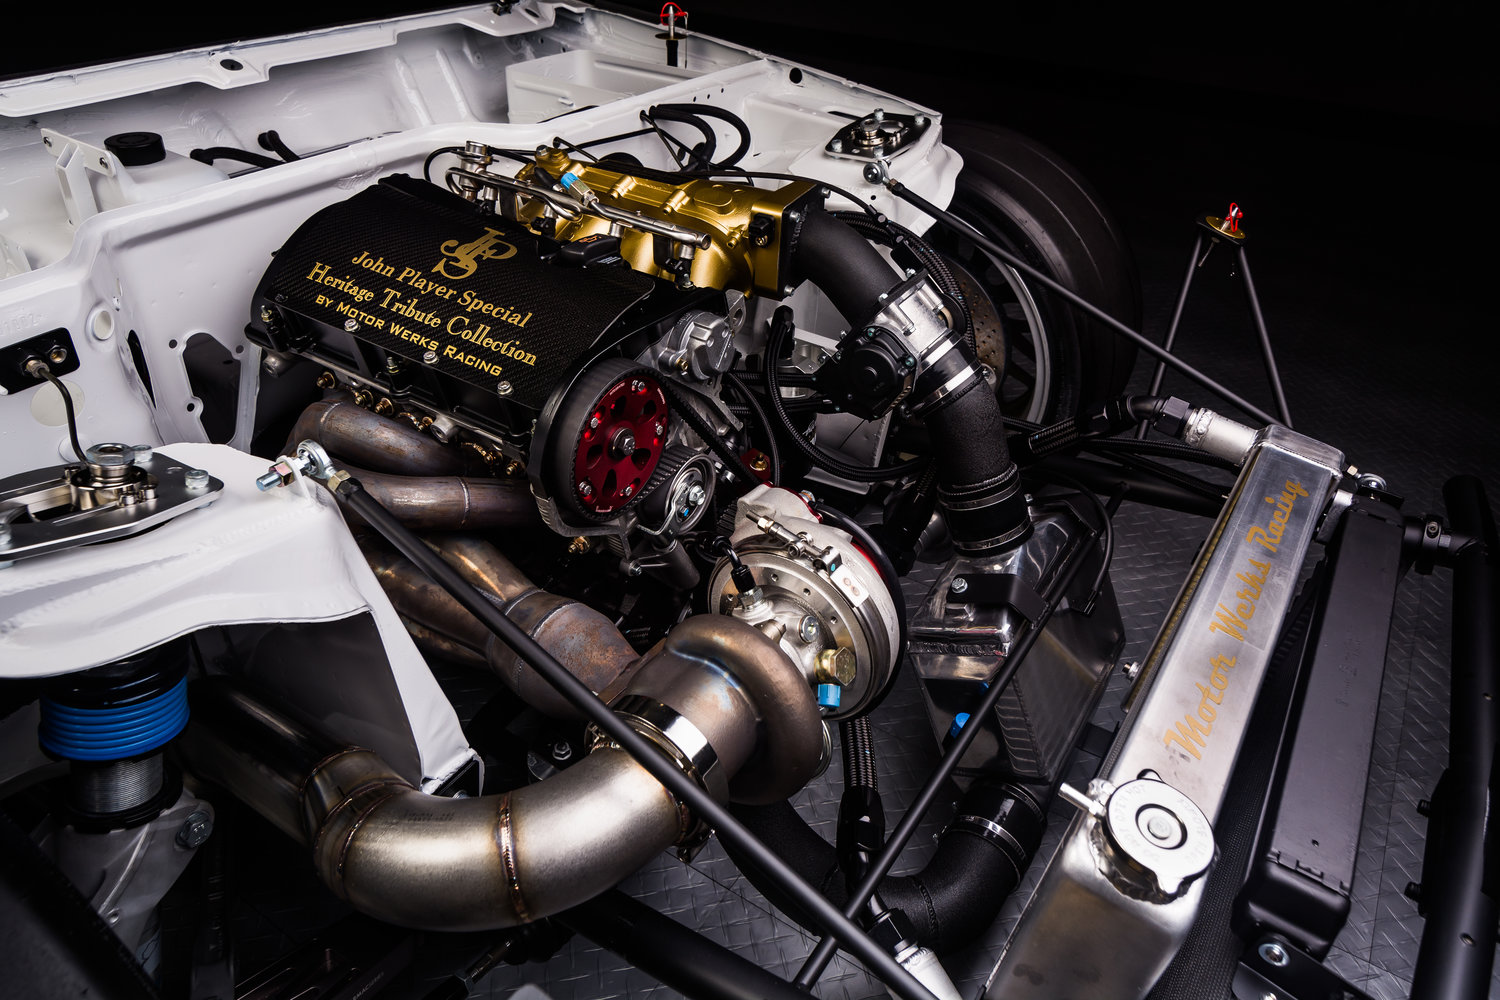 hight resolution of motor werks racing loves the engine so much they offer a 1 8 l engine conversion for the porsche 924 944 the package comes in three power levels